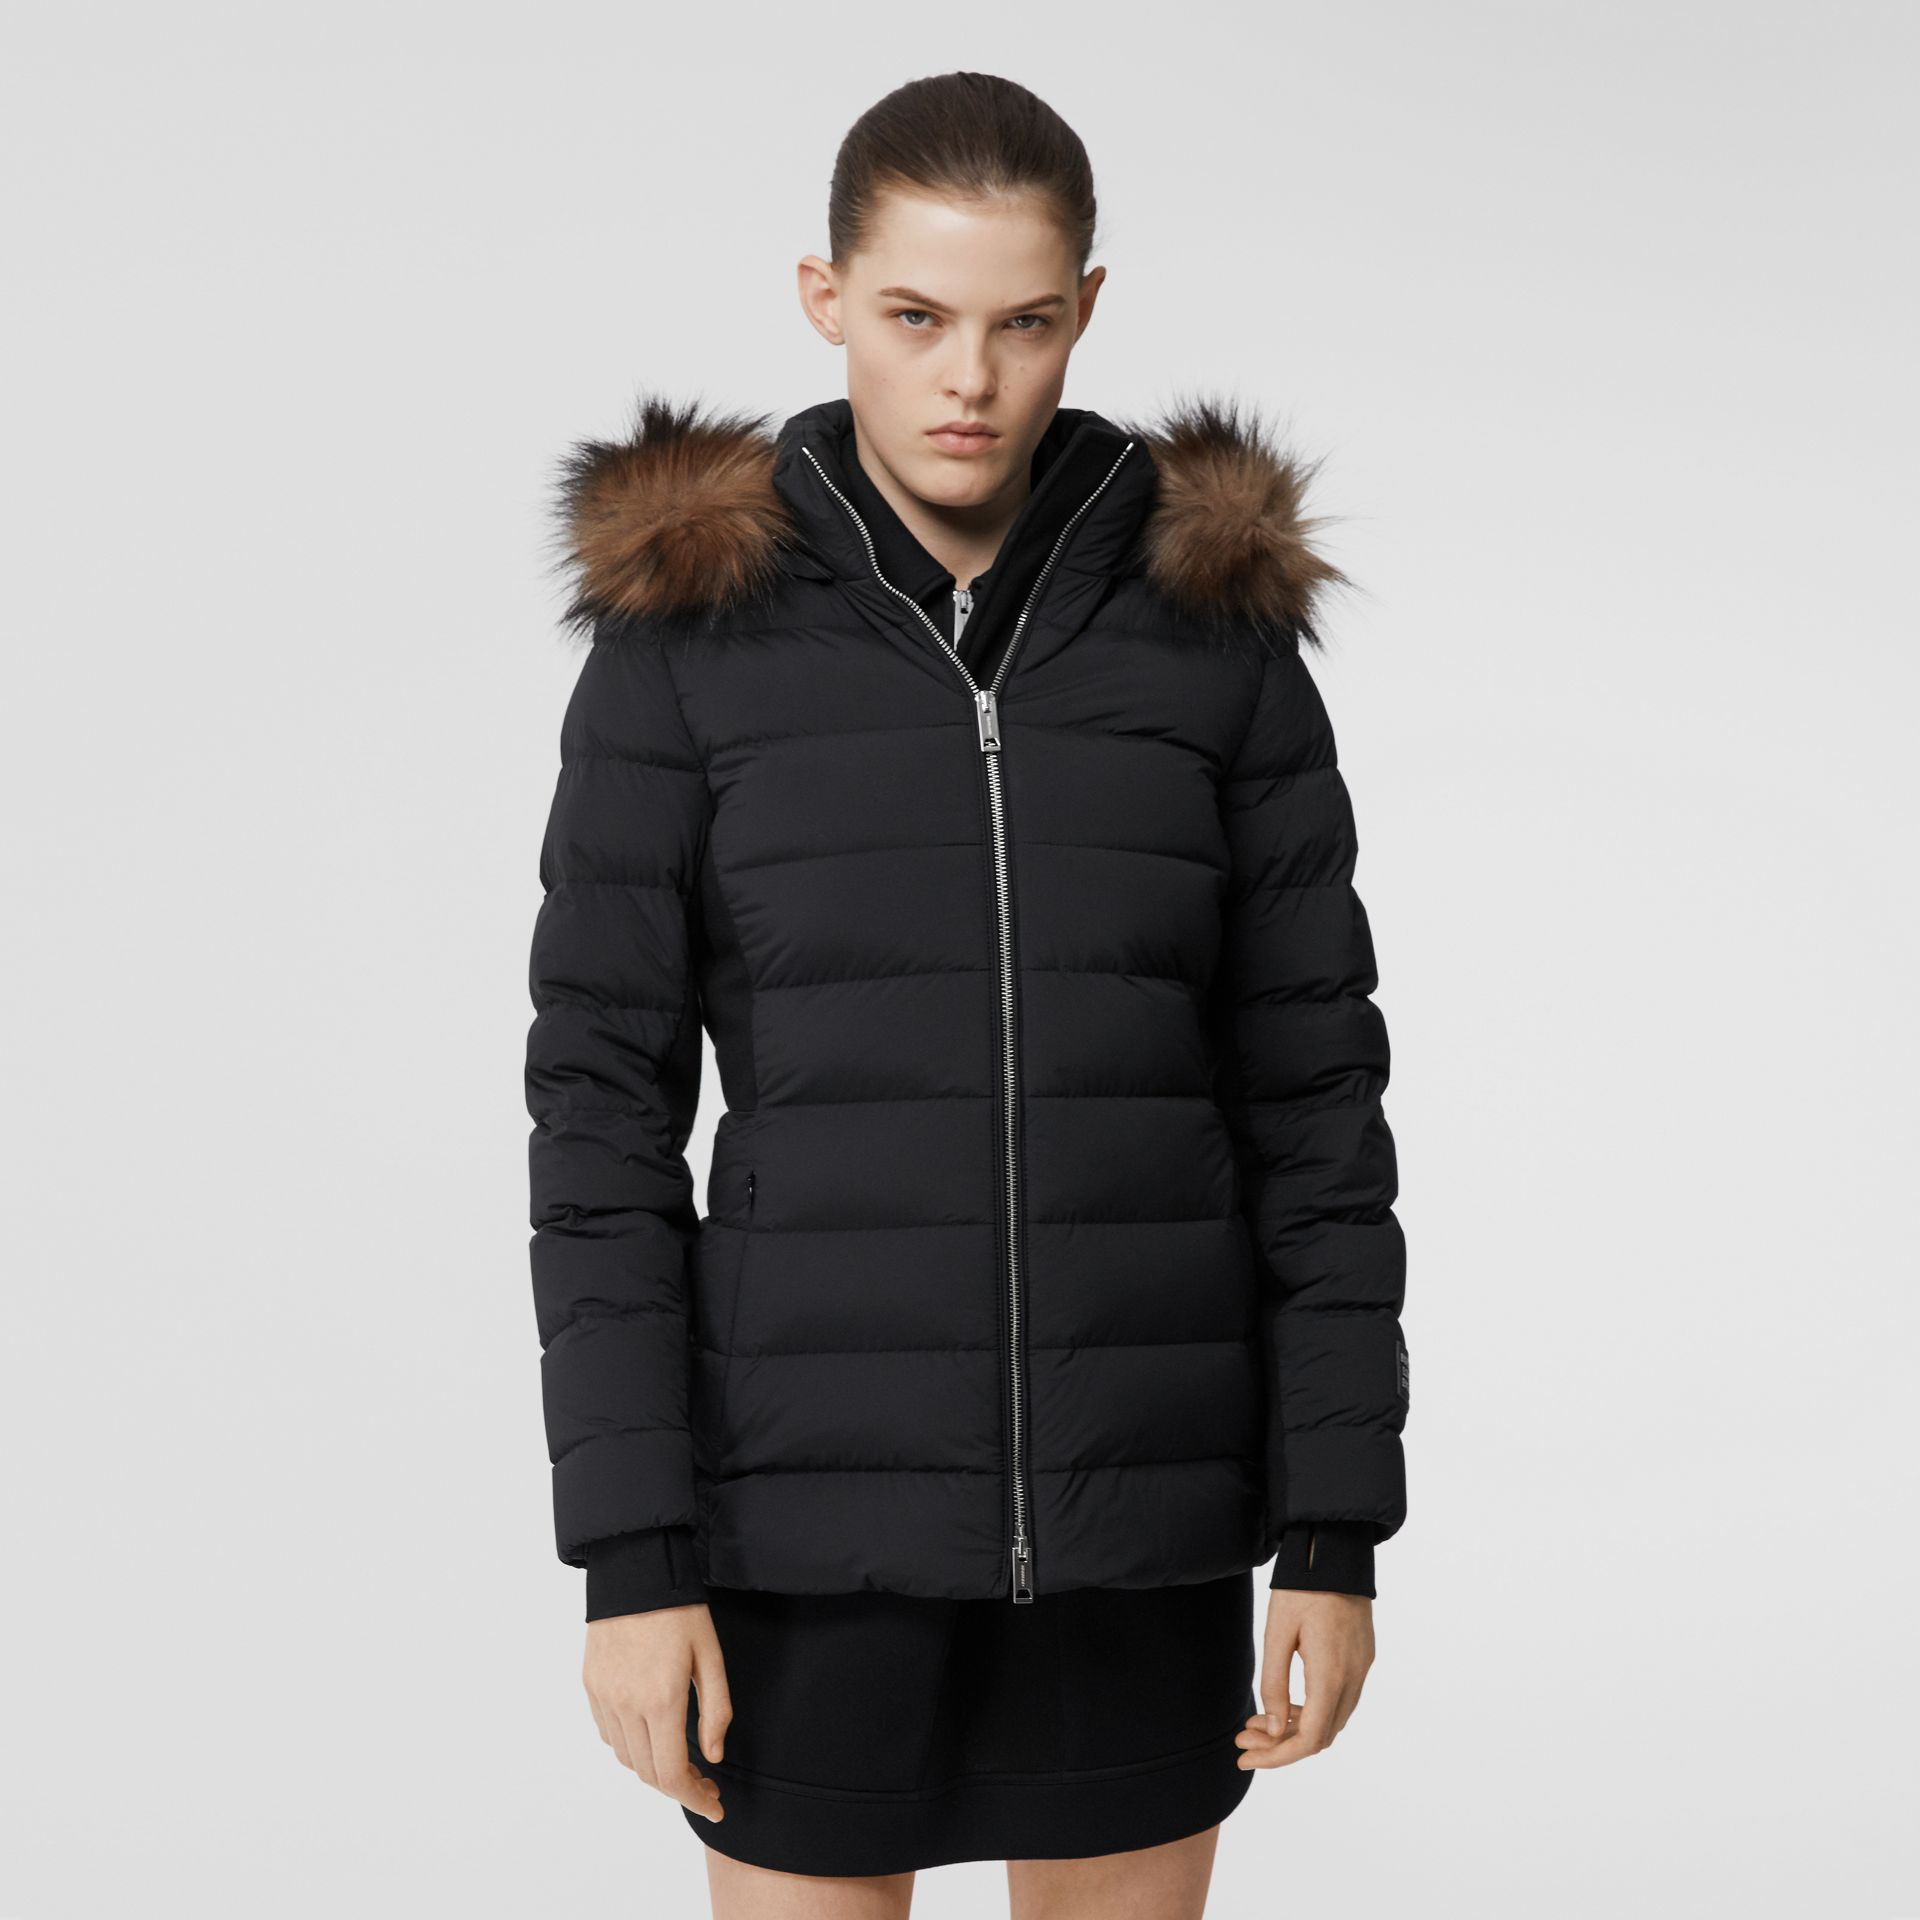 Detachable Faux Fur Trim Hooded Puffer Jacket in Black - Women | Burberry - gallery image 6